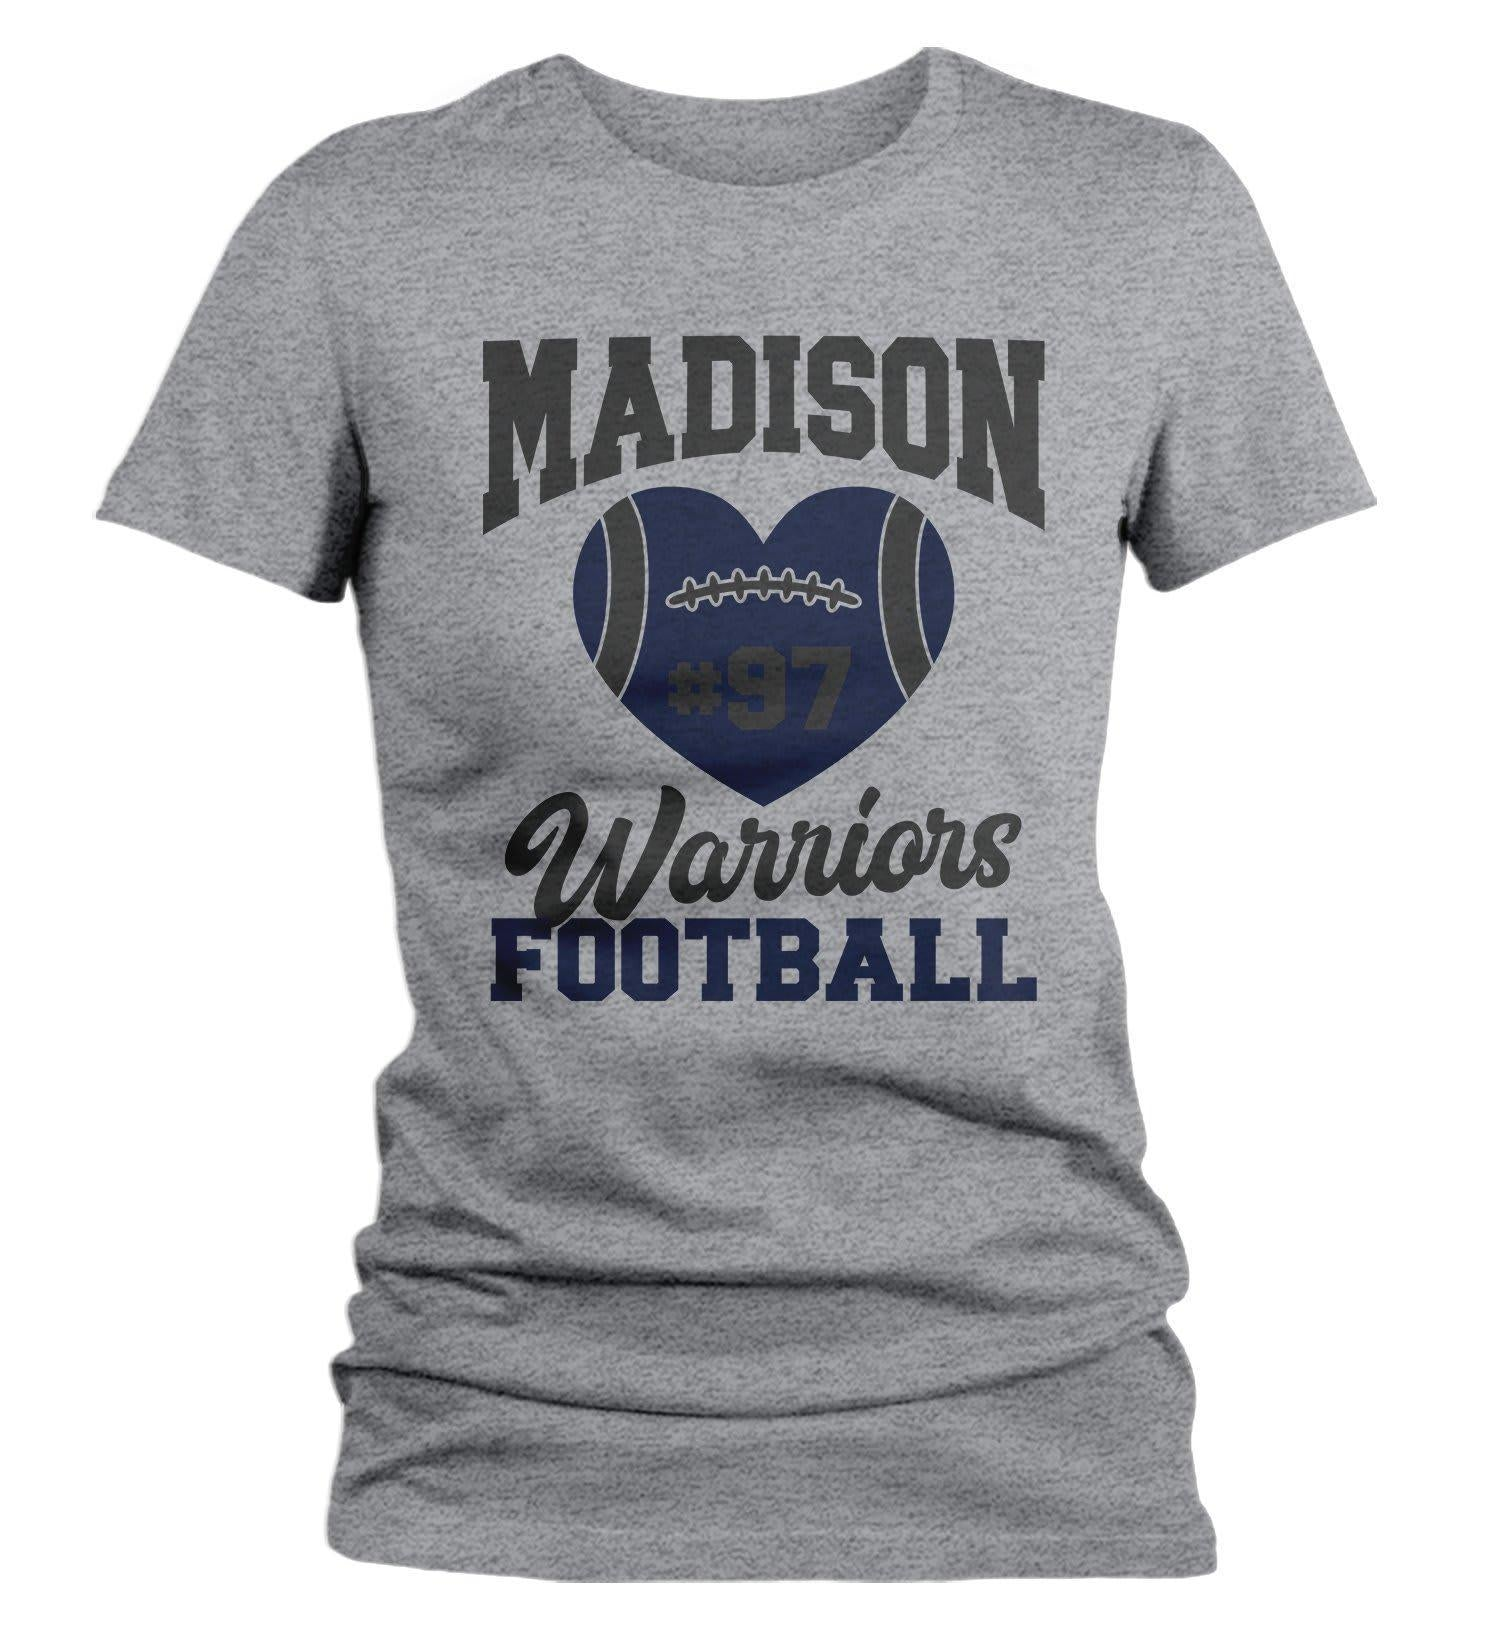 d612142c21fc0 Women's Personalized Football Mom T Shirt Custom Football Shirts Heart  Football T Shirt Personalized Team Shirts